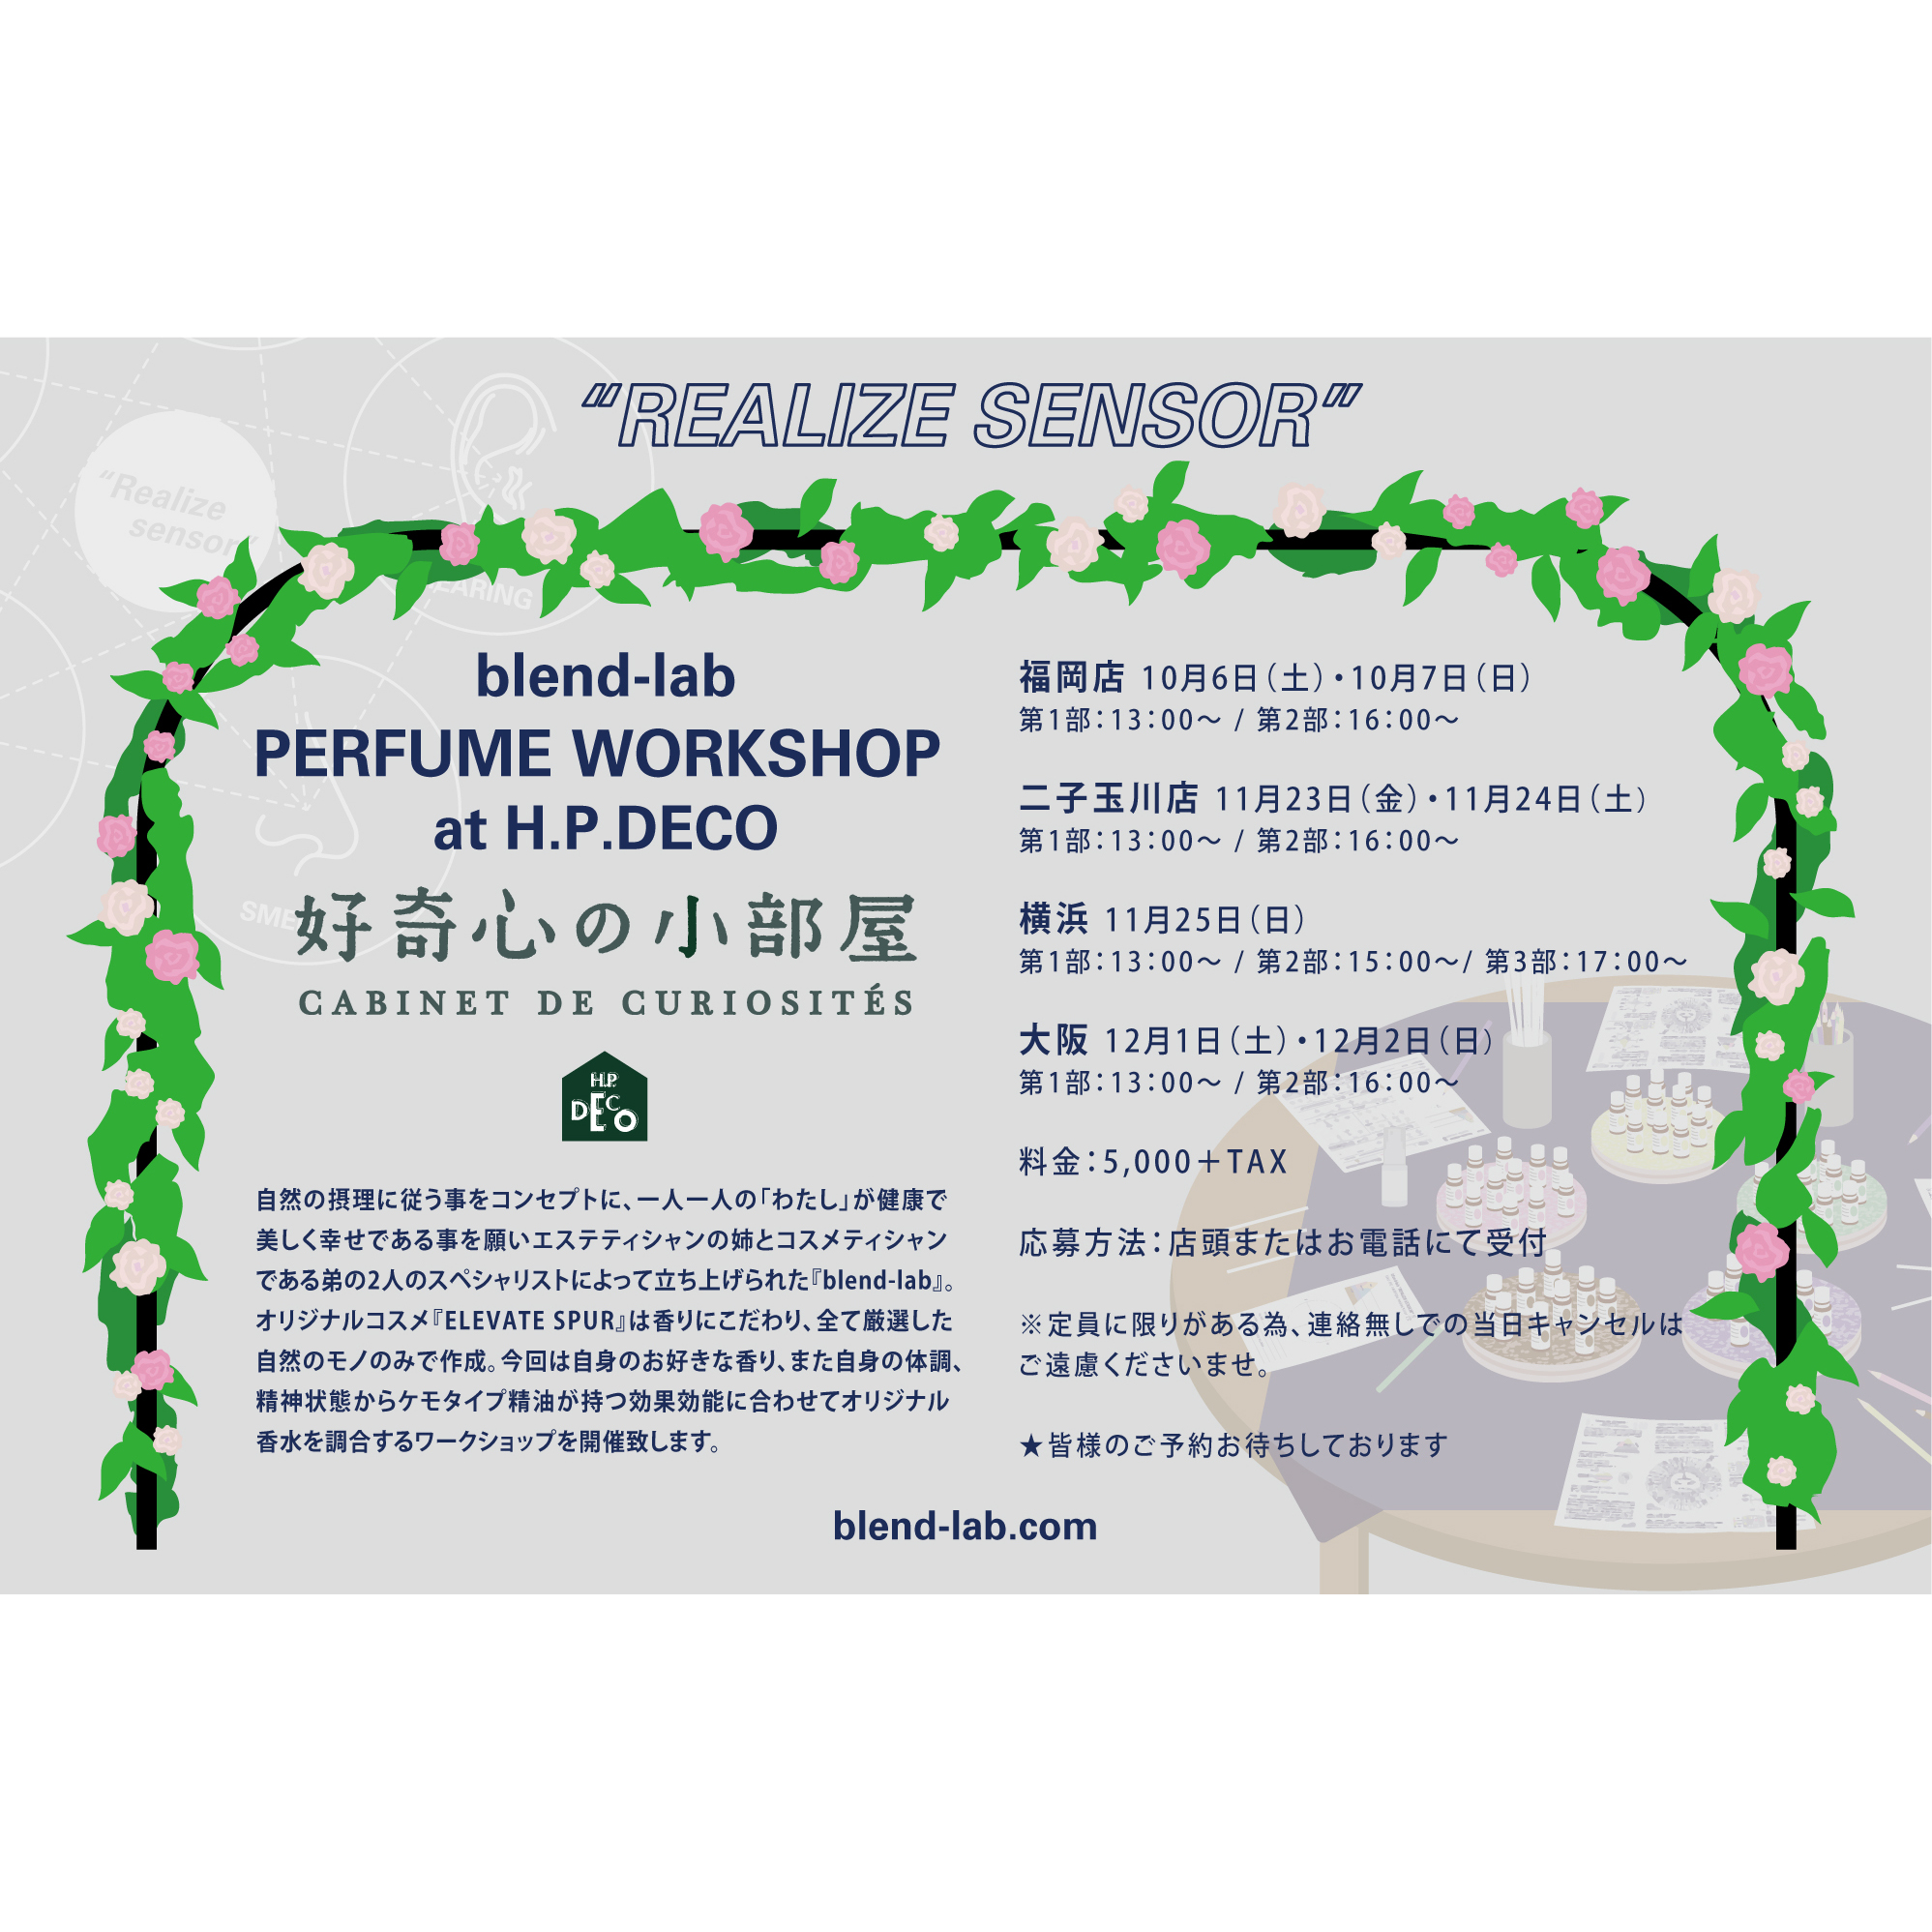 blend-lab PERFUME WORKSHOP at H.P.DECO